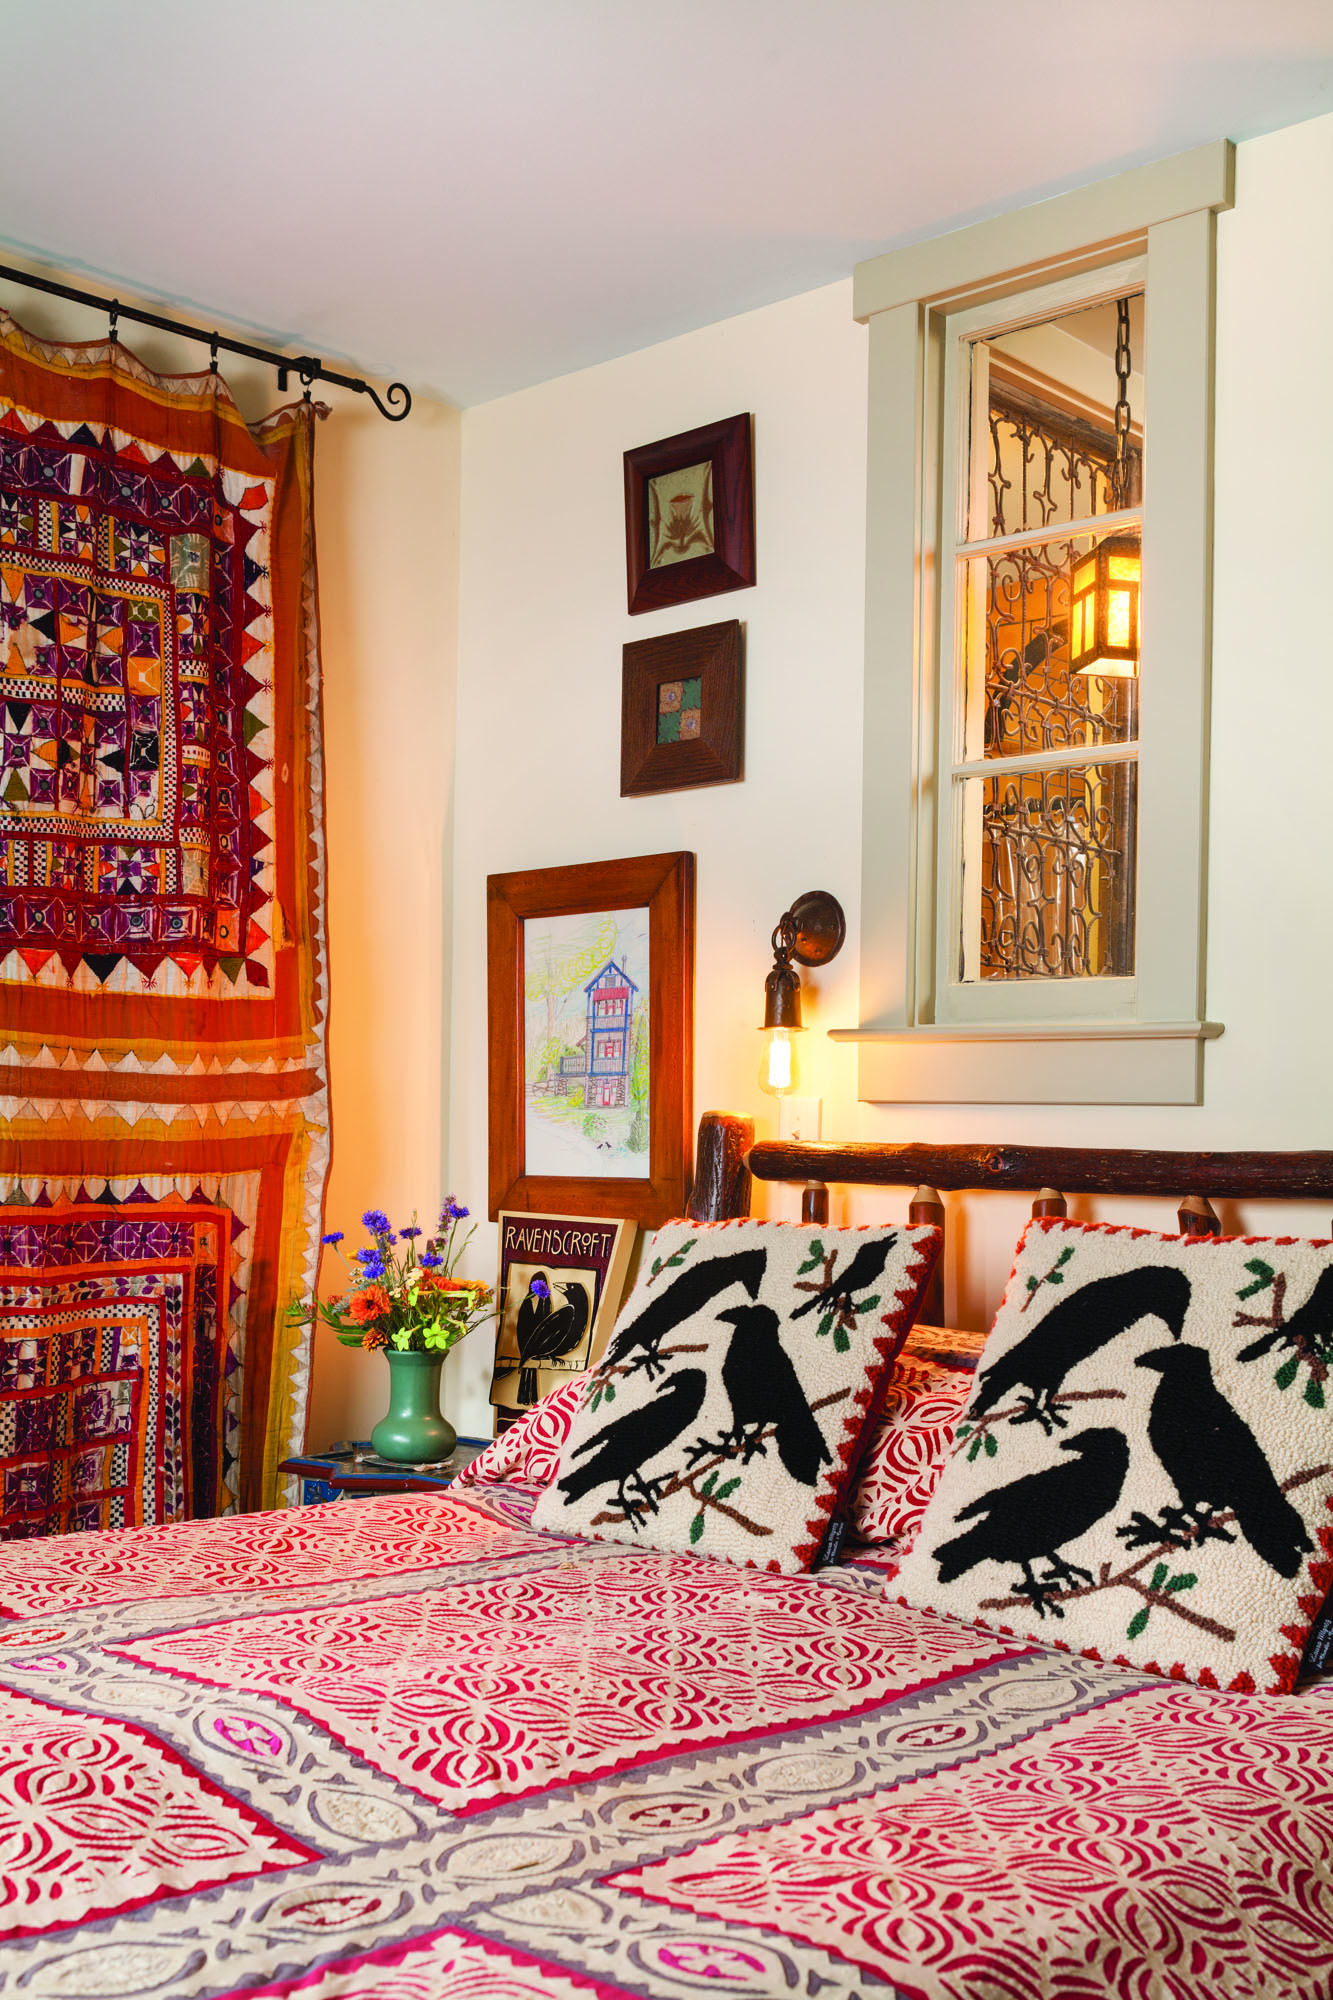 Mixing what's local with the exotic, the lowest-level guest bedroom is a departure that still features handcraft. The hand-embroidered hanging from India is vintage. Salvaged windows above the bed let light into the Moorish bathroom beyond.